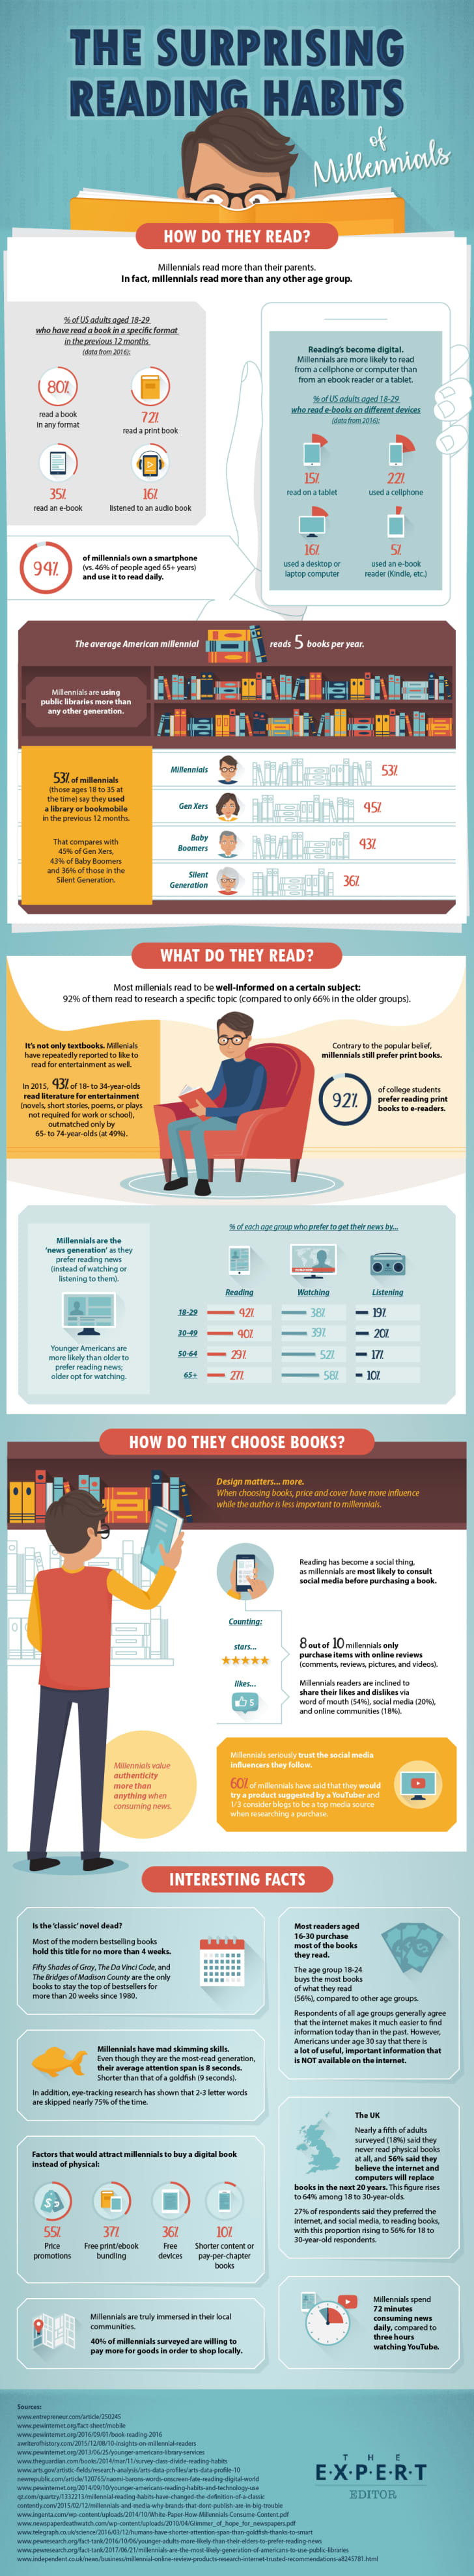 An infographic on Millennial reading habits